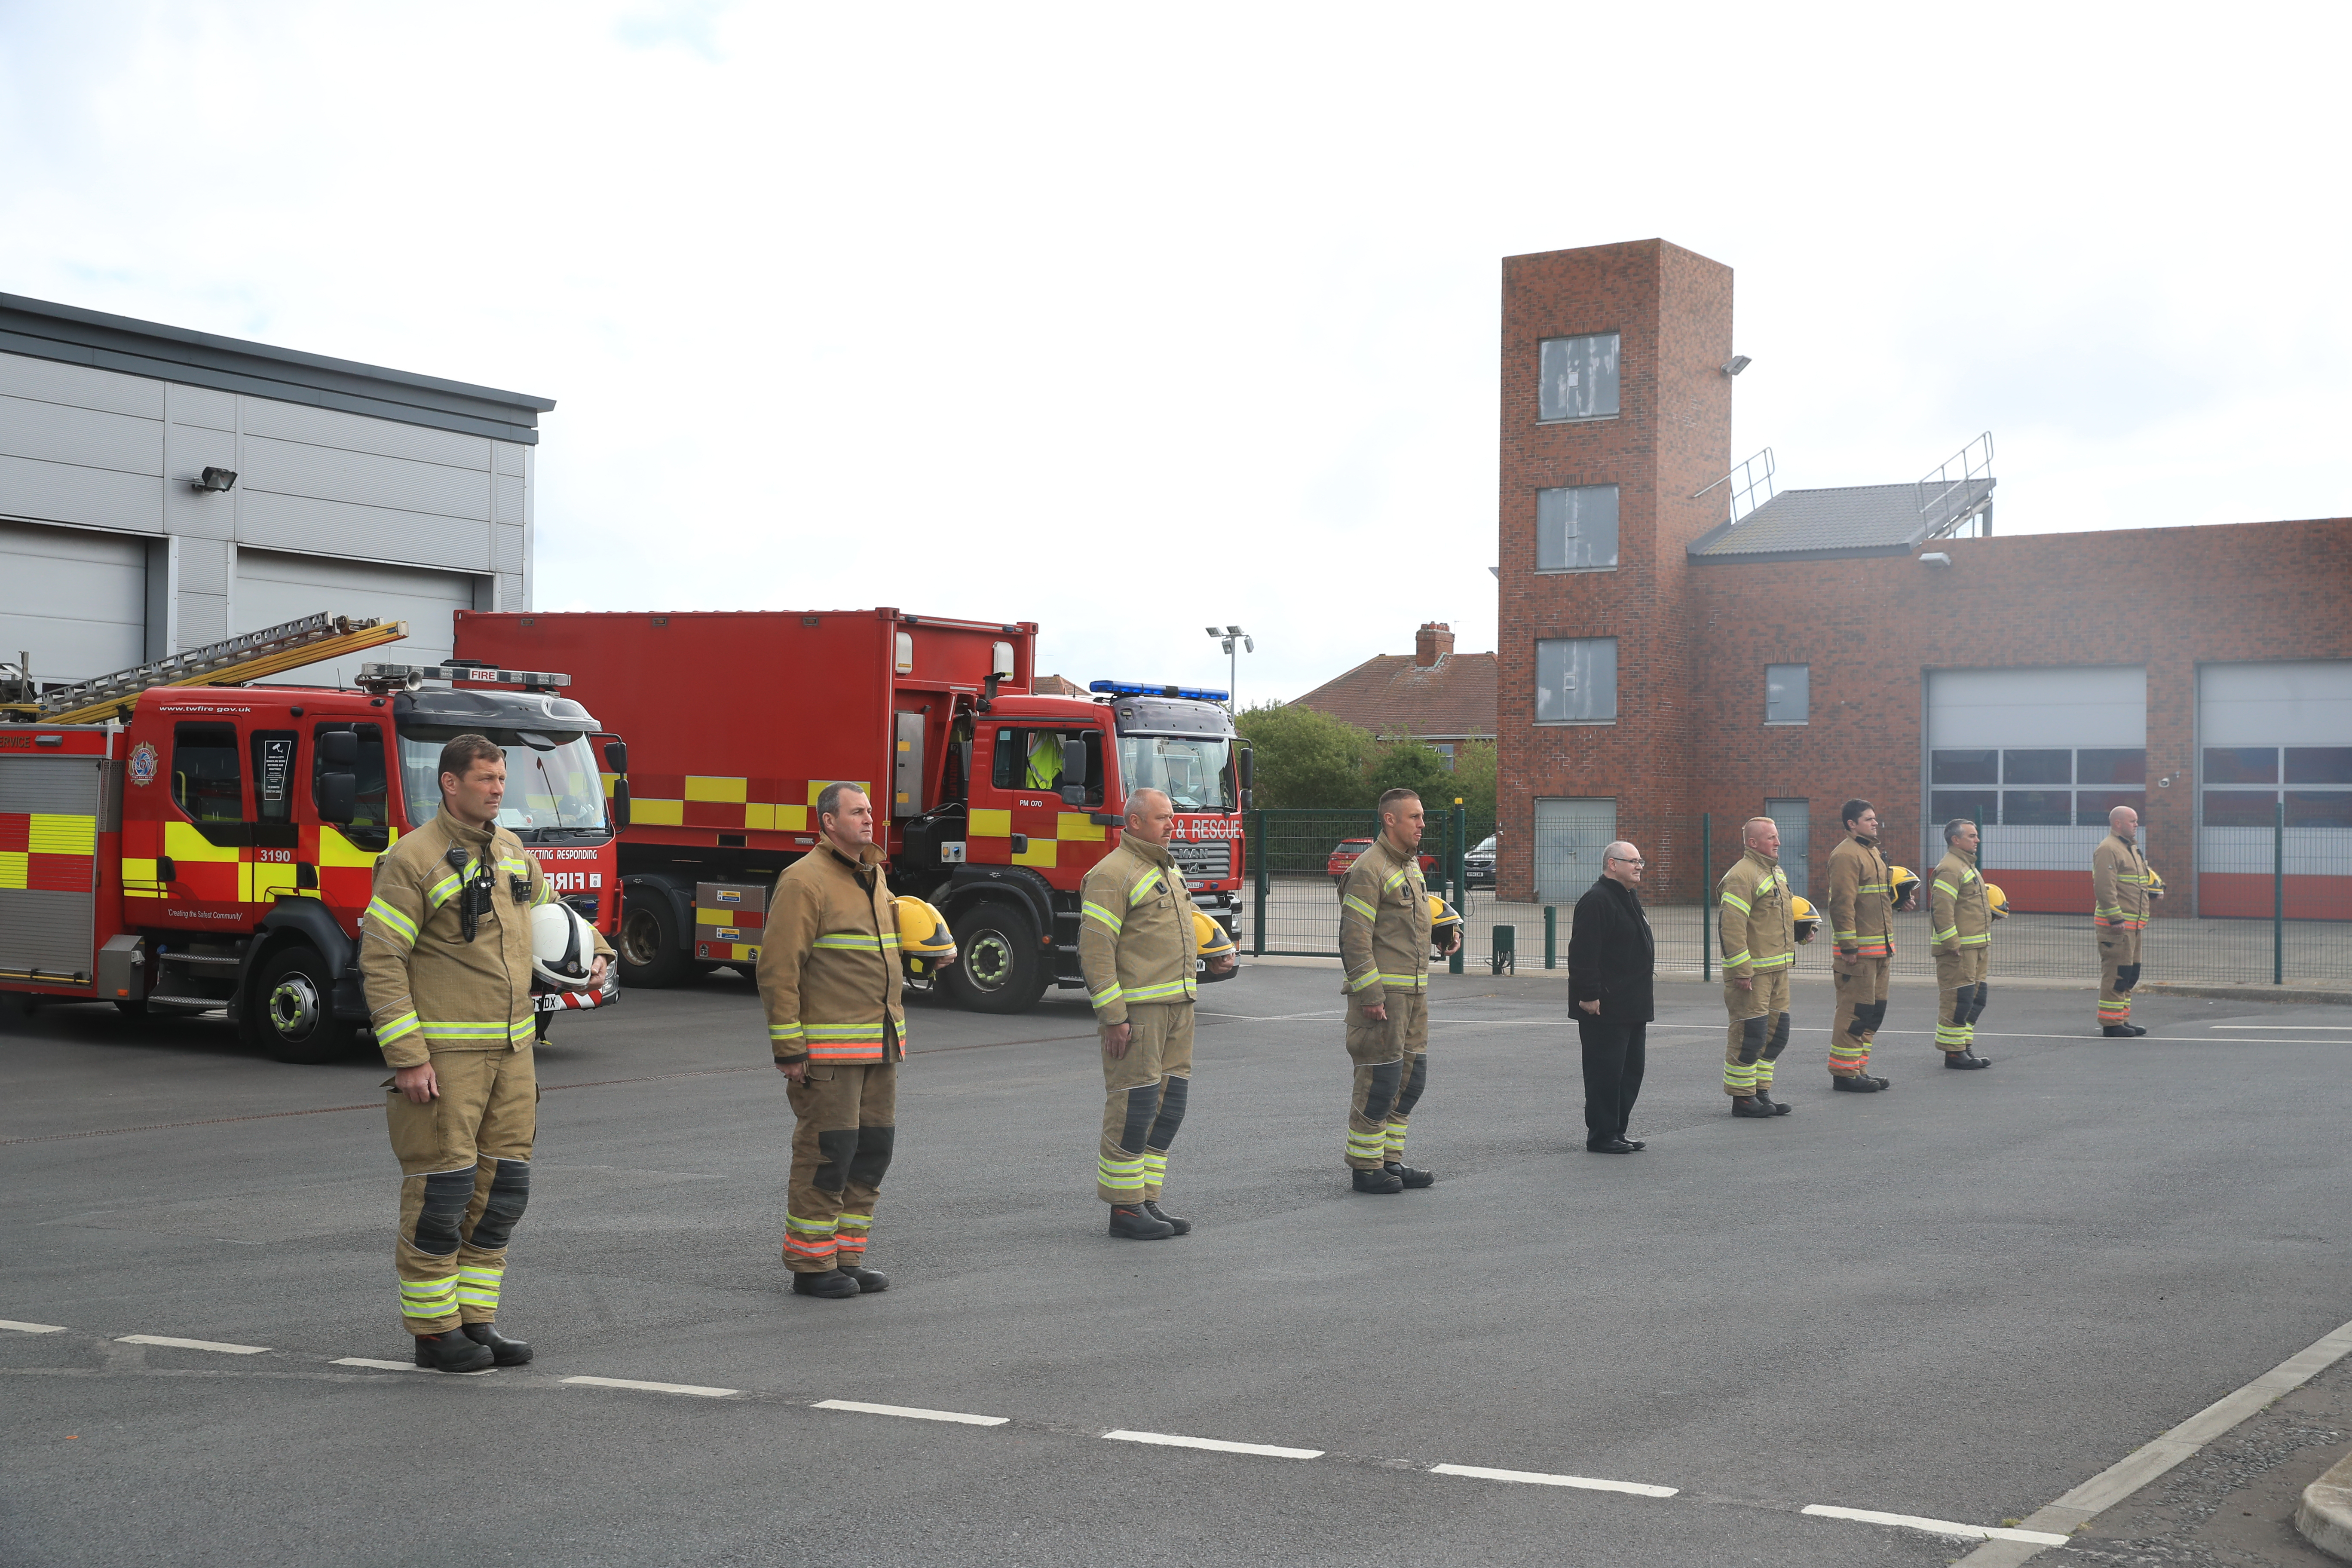 Firefighters observe a minute's silence outside Tynemouth Community Fire Station, during Firefighters Memorial Day in memory their colleagues that lost their lives in the line of duty across the UK and around the world.